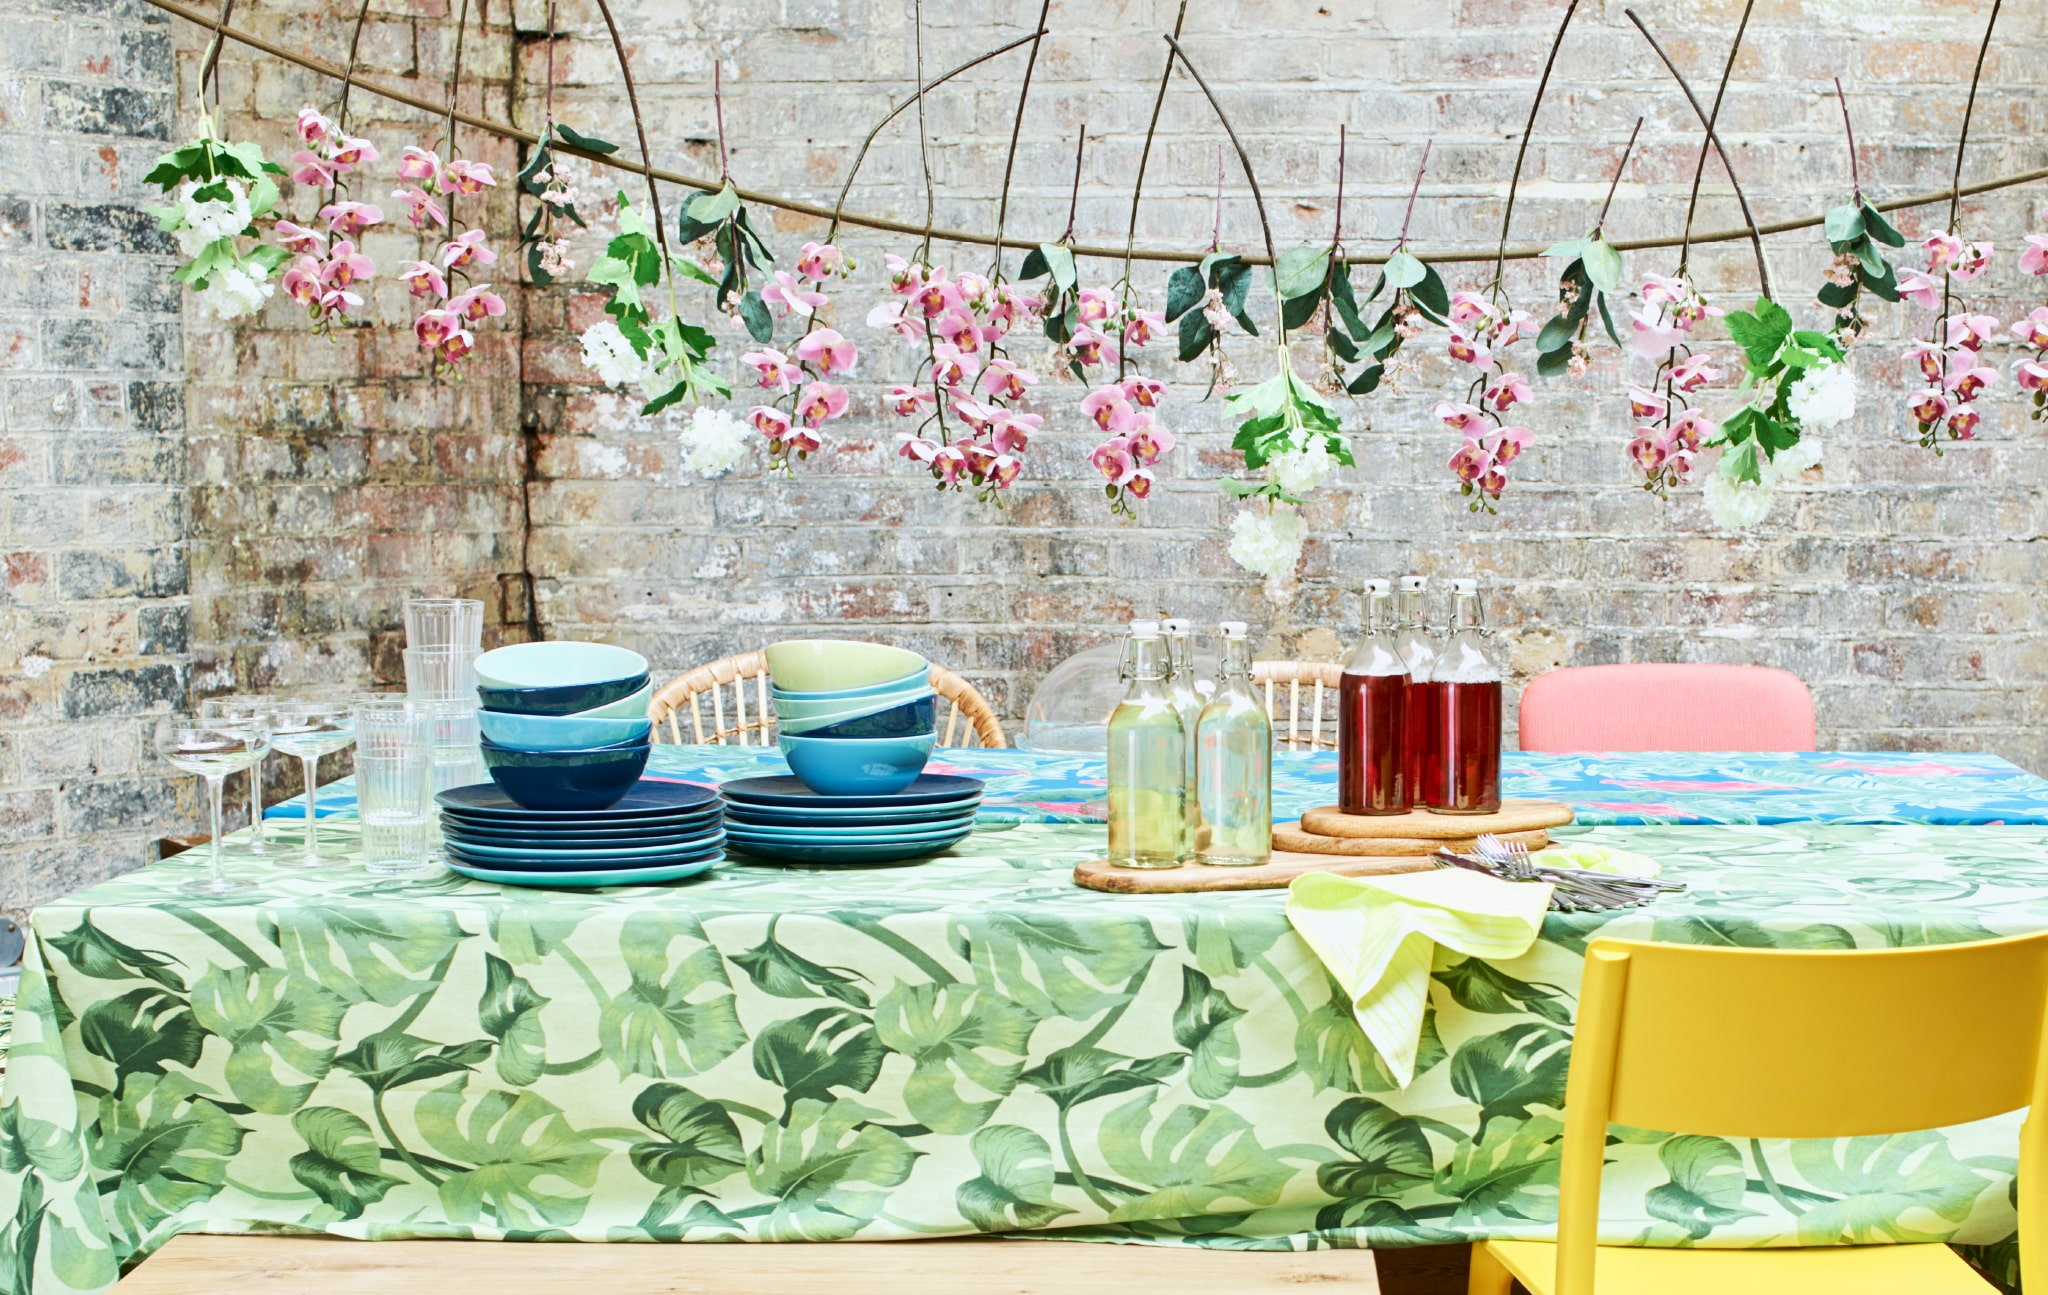 Home visit: table deco ideas for a summer party